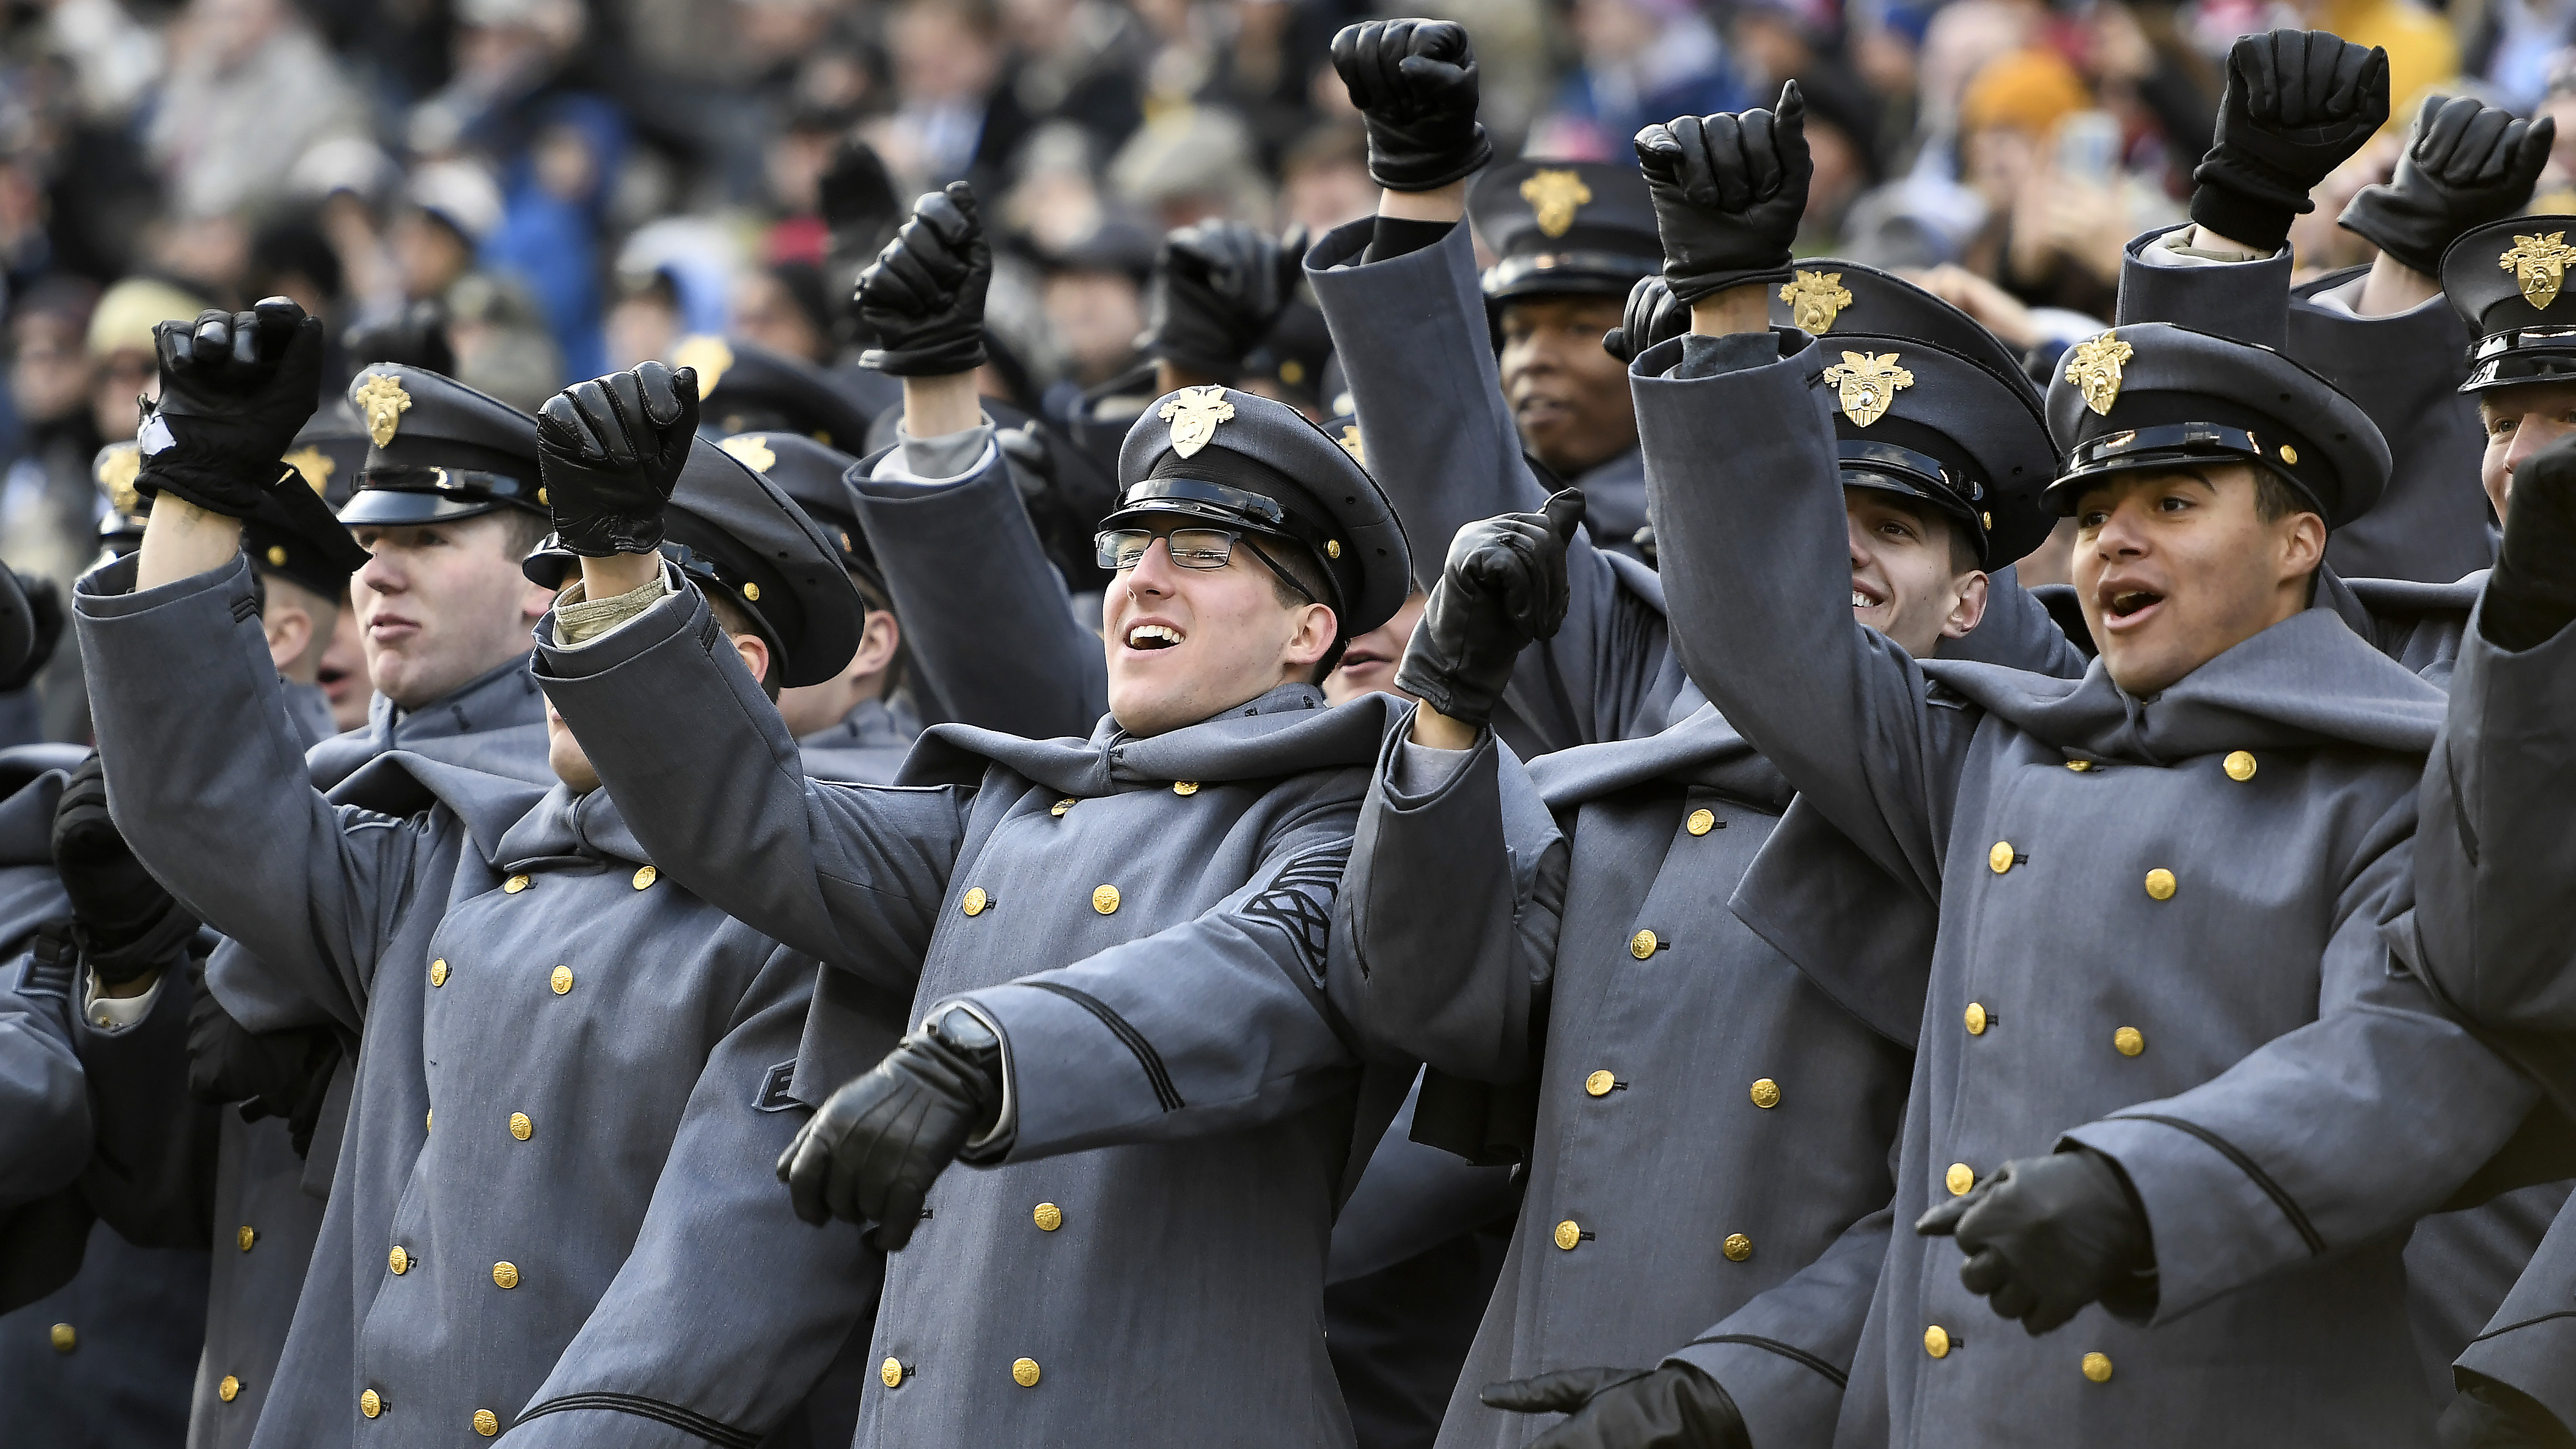 Army Cadets cheer before the game against Navy Midshipmen at Lincoln Financial Field on December 08, 2018 in Philadelphia, Pennsylvania. (Photo by Sarah Stier/Getty Images)